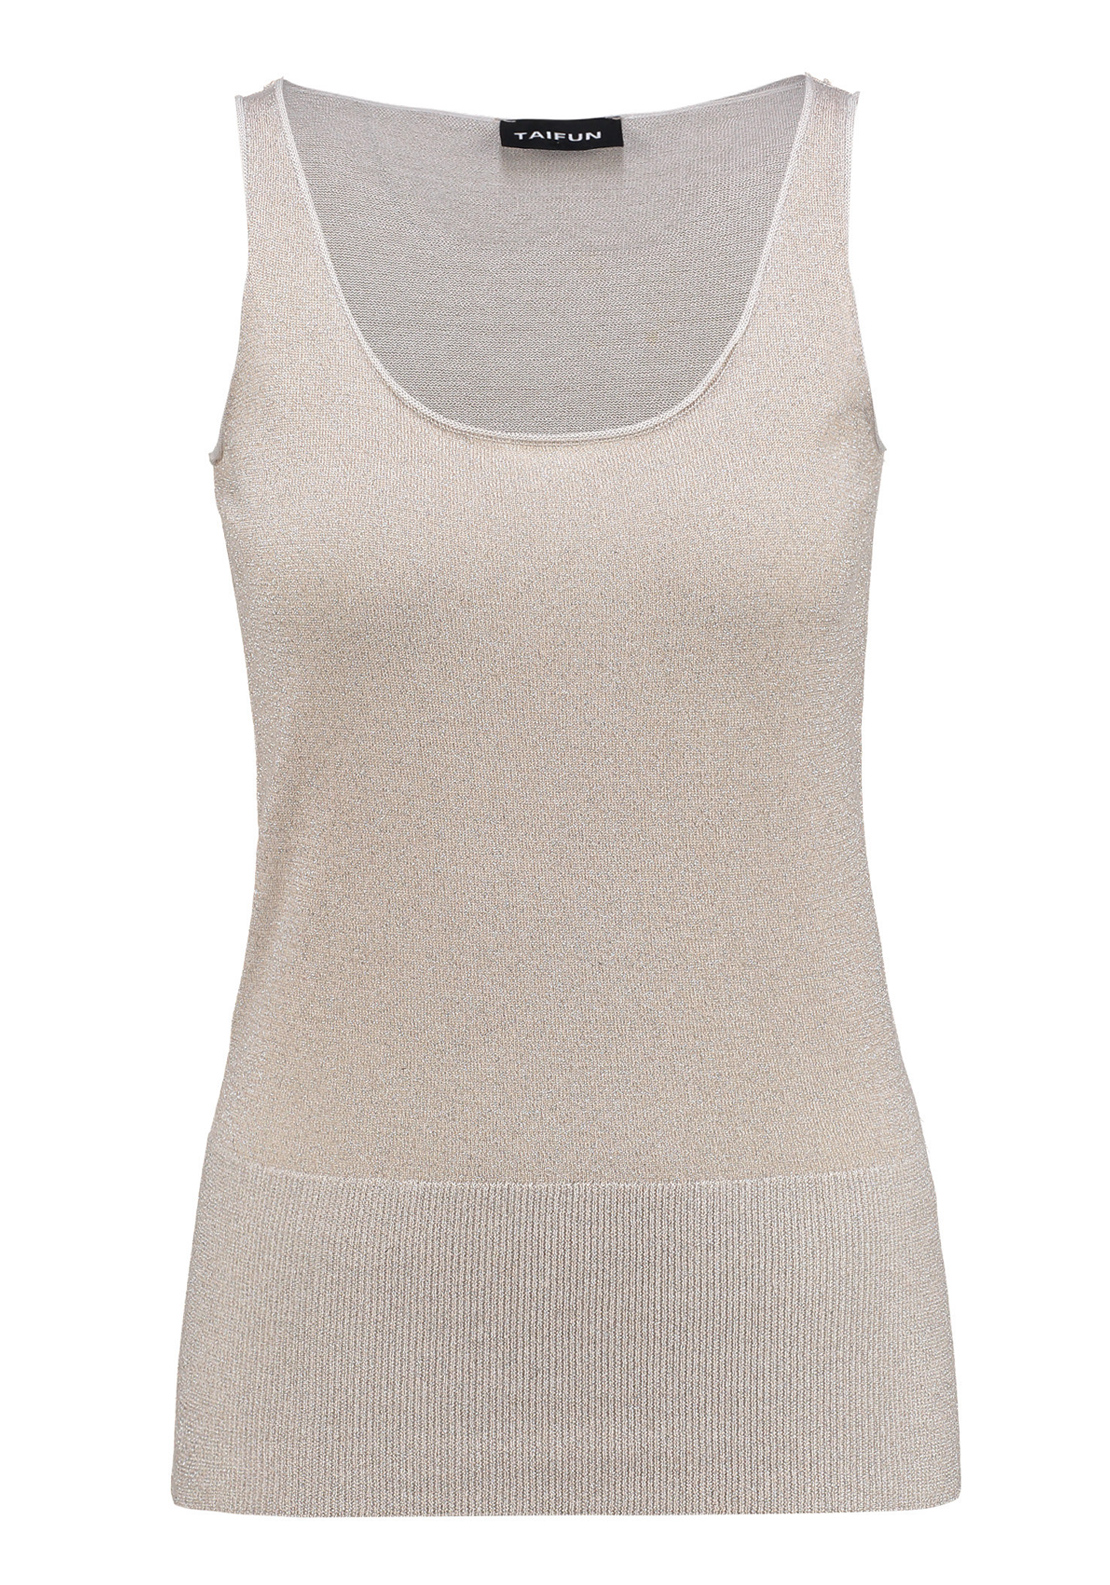 Taifun Sleeveless Lurex Vest Top, Gold